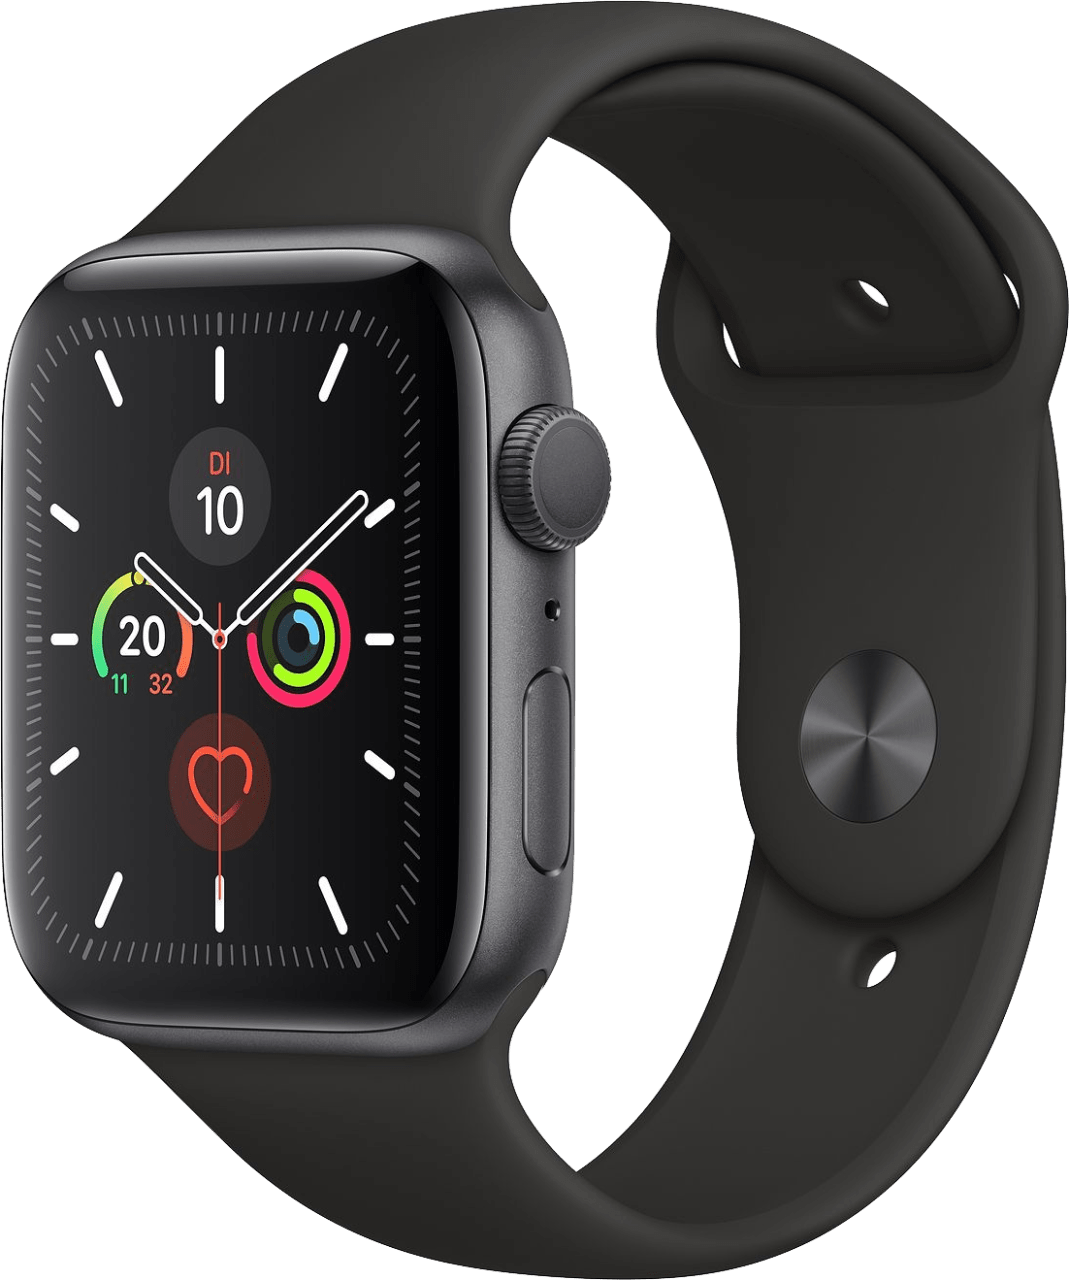 Schwarz Apple Watch Series 5 GPS, 44mm.2